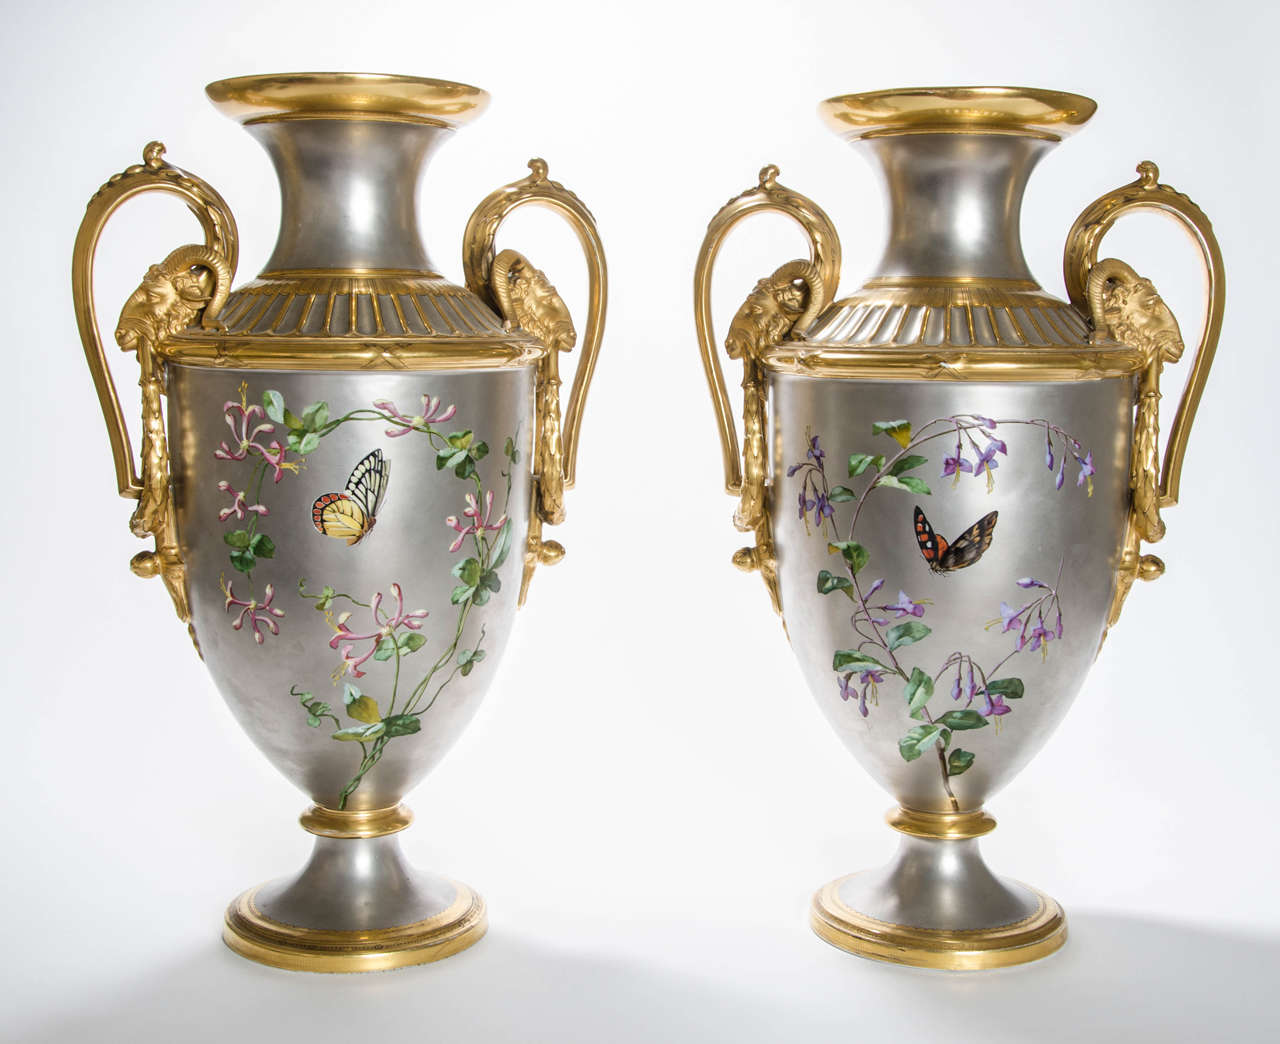 Pair of 19th Century Platinum Ground Two Handled Vases by P. Soustre 2